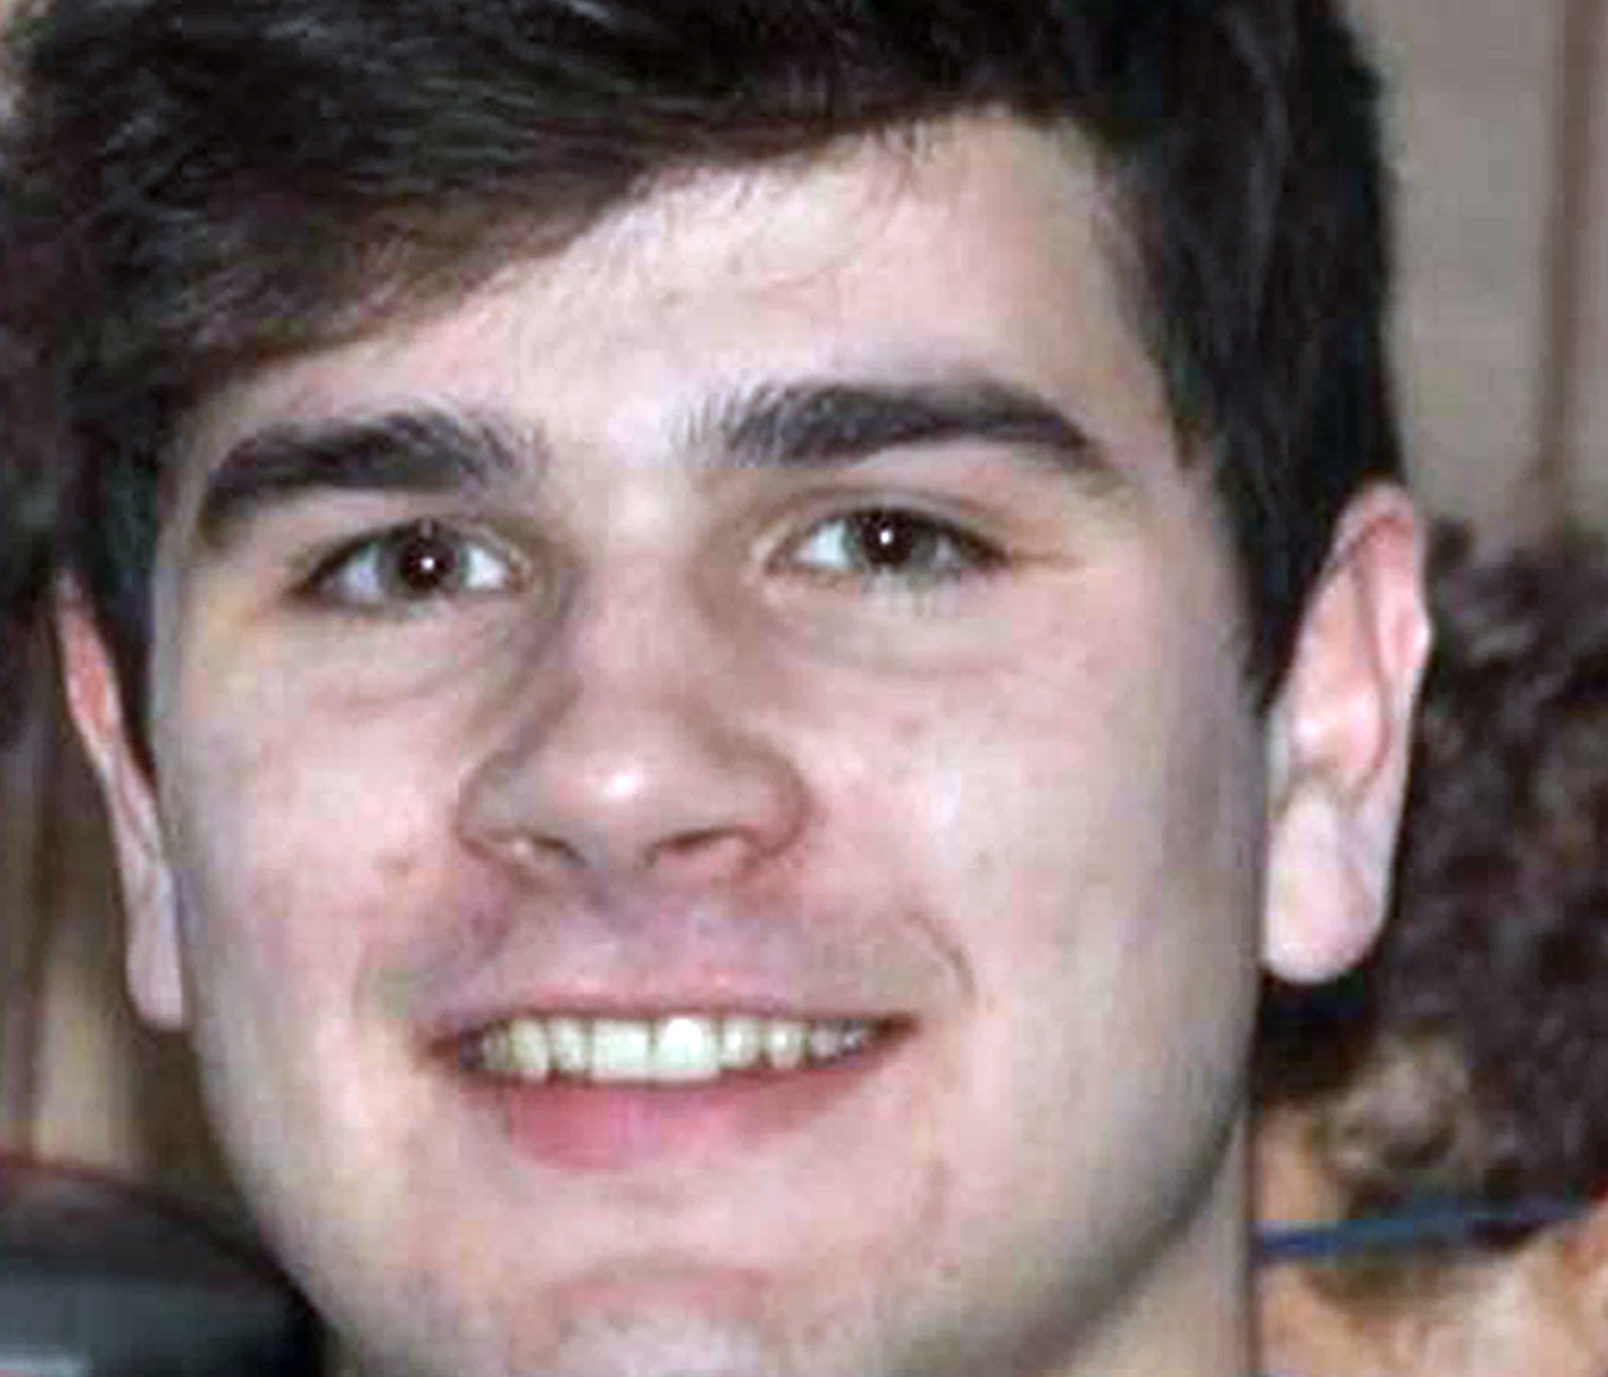 Duncan Sim has been missing since March 14 (Police Scotland/PA)